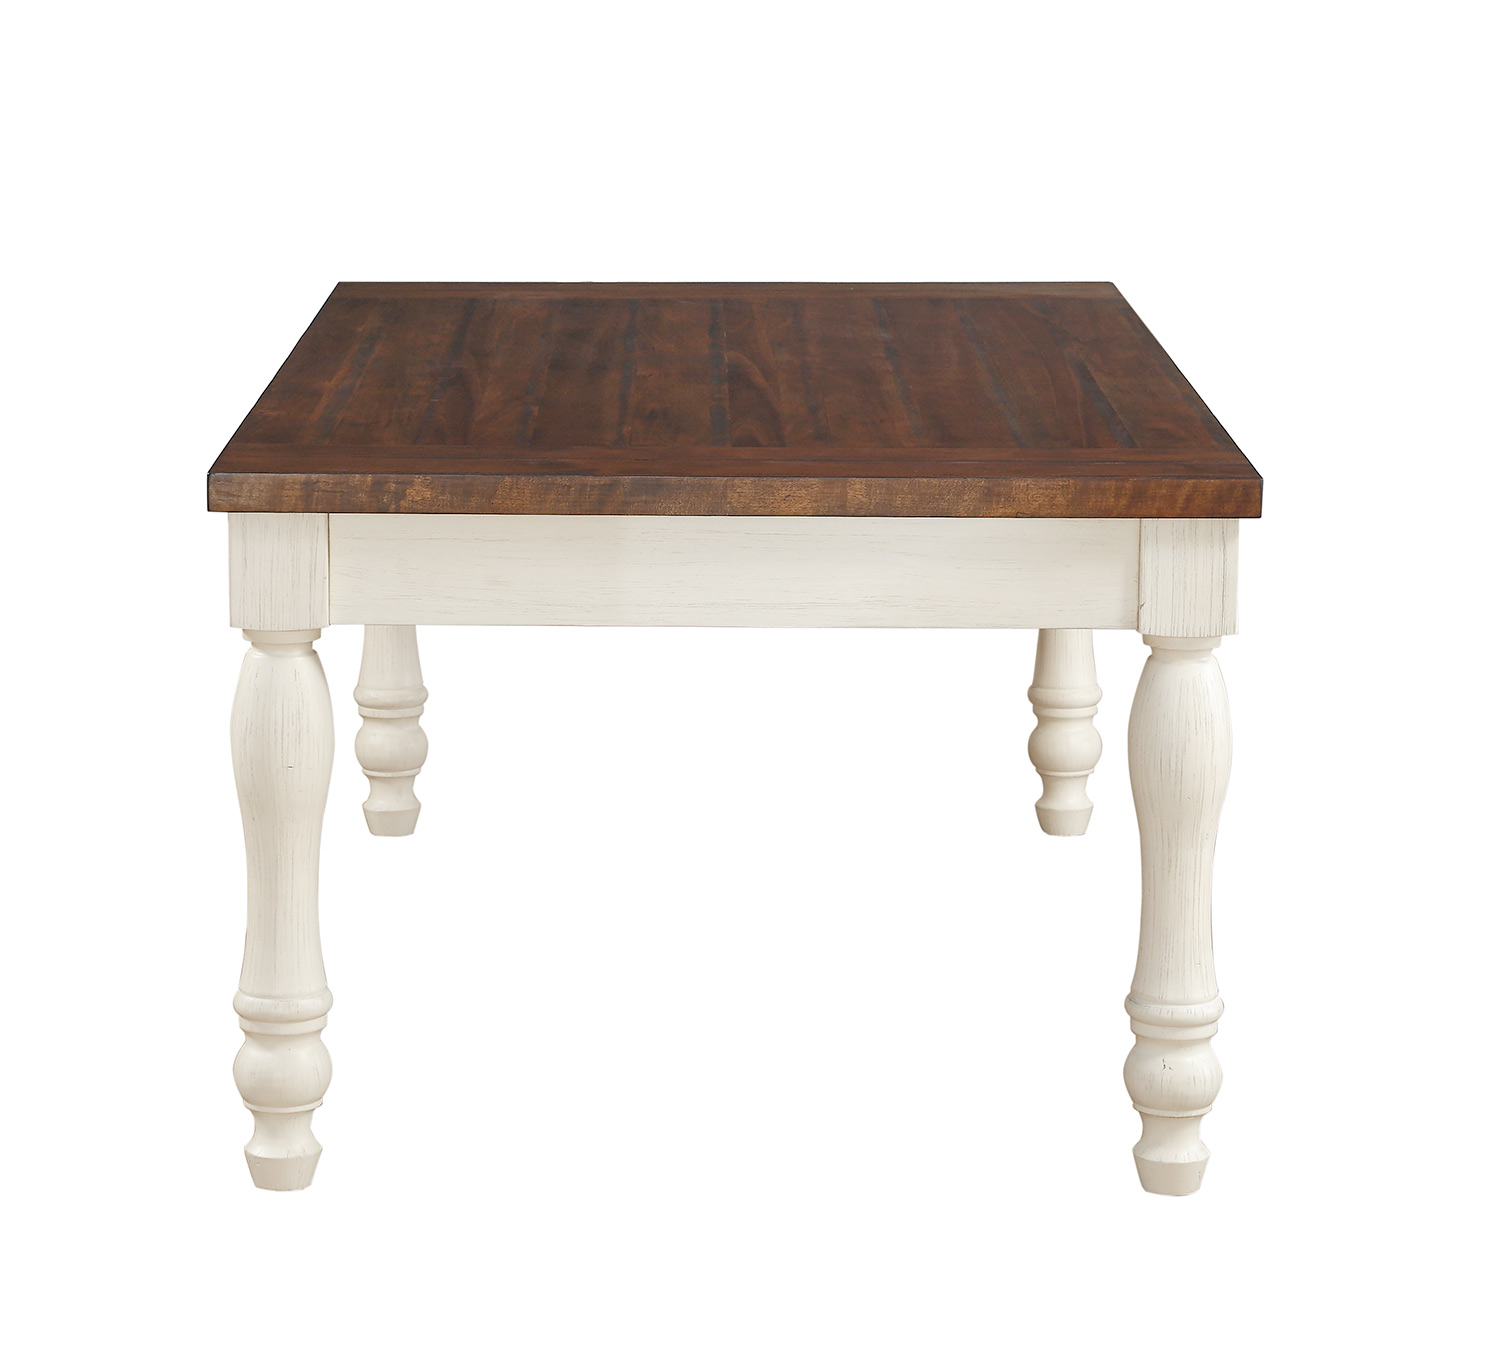 Acme Britta Dining Table - Walnut/White Washed